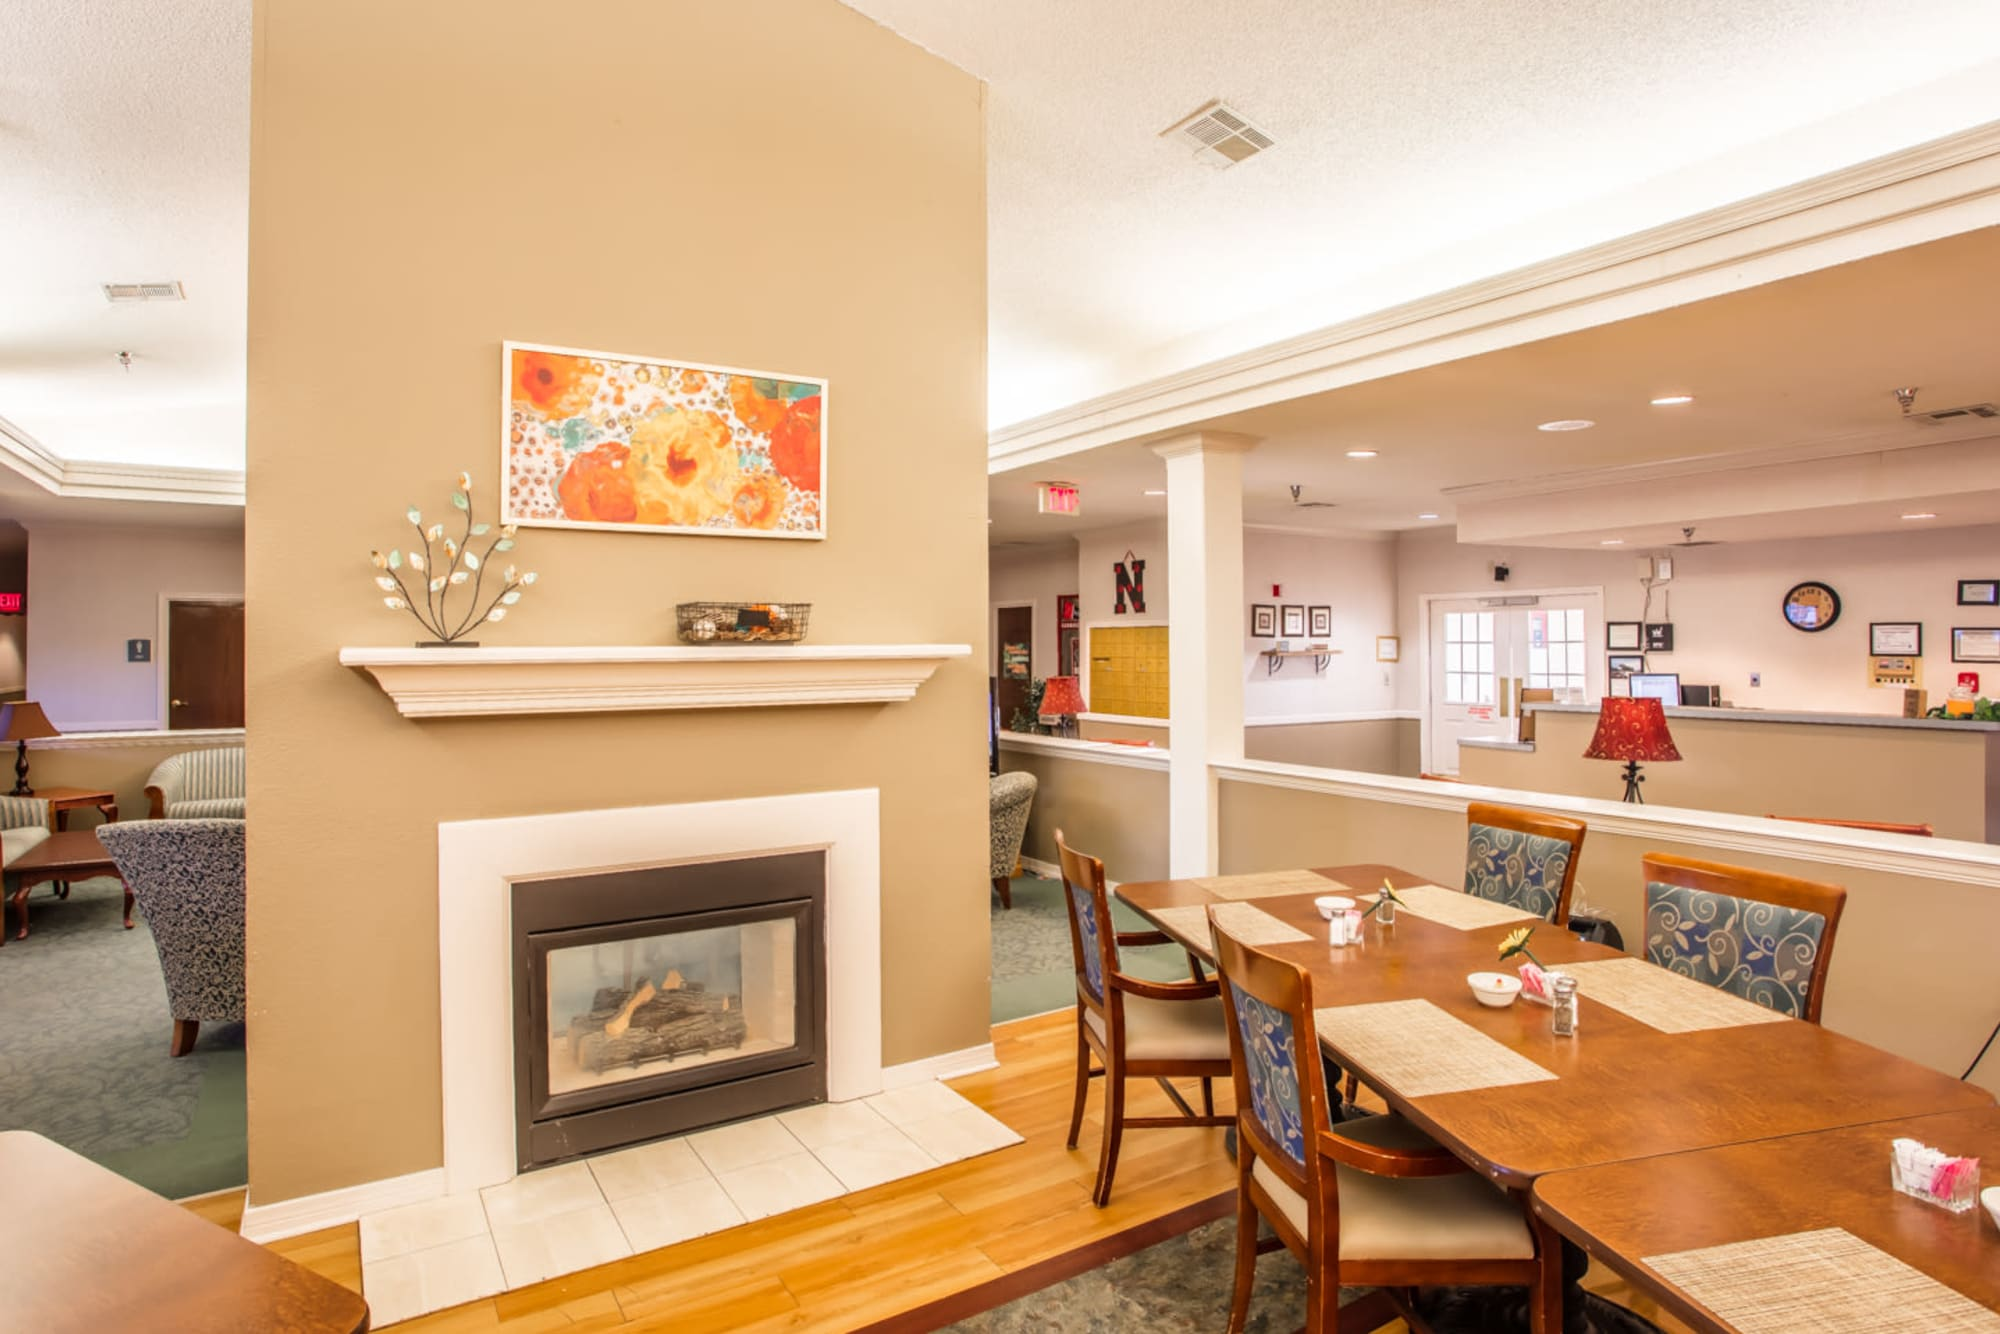 Dining area complete with bright lighting and fireplace at Homestead House in Beatrice, Nebraska.